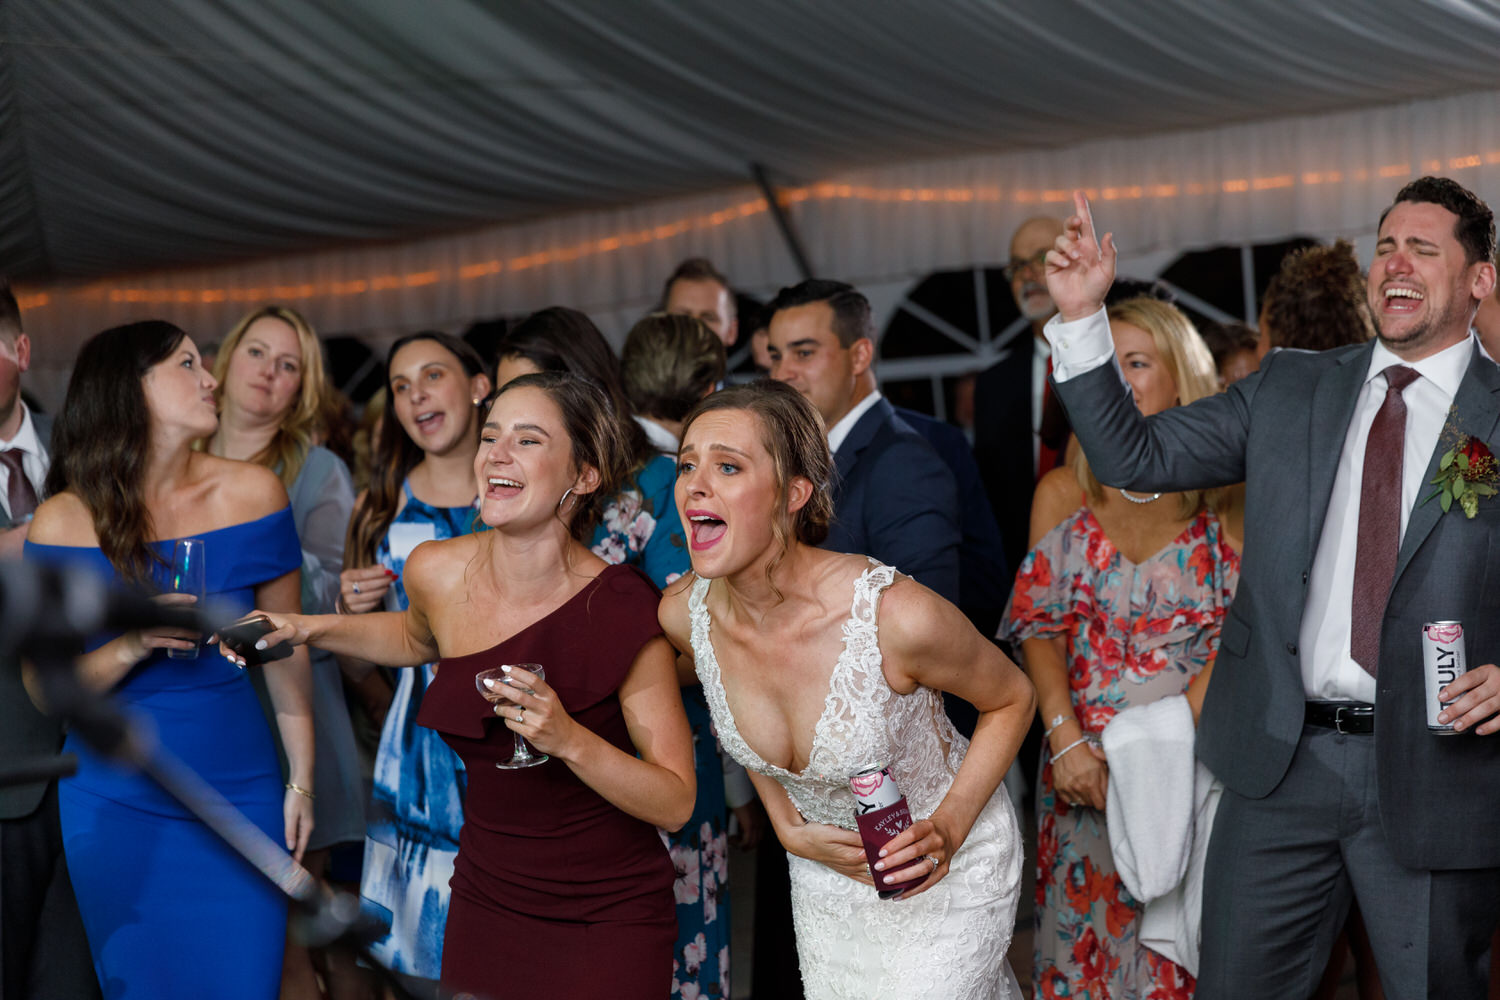 Bride and bridesmaid shouting for the band during wedding reception